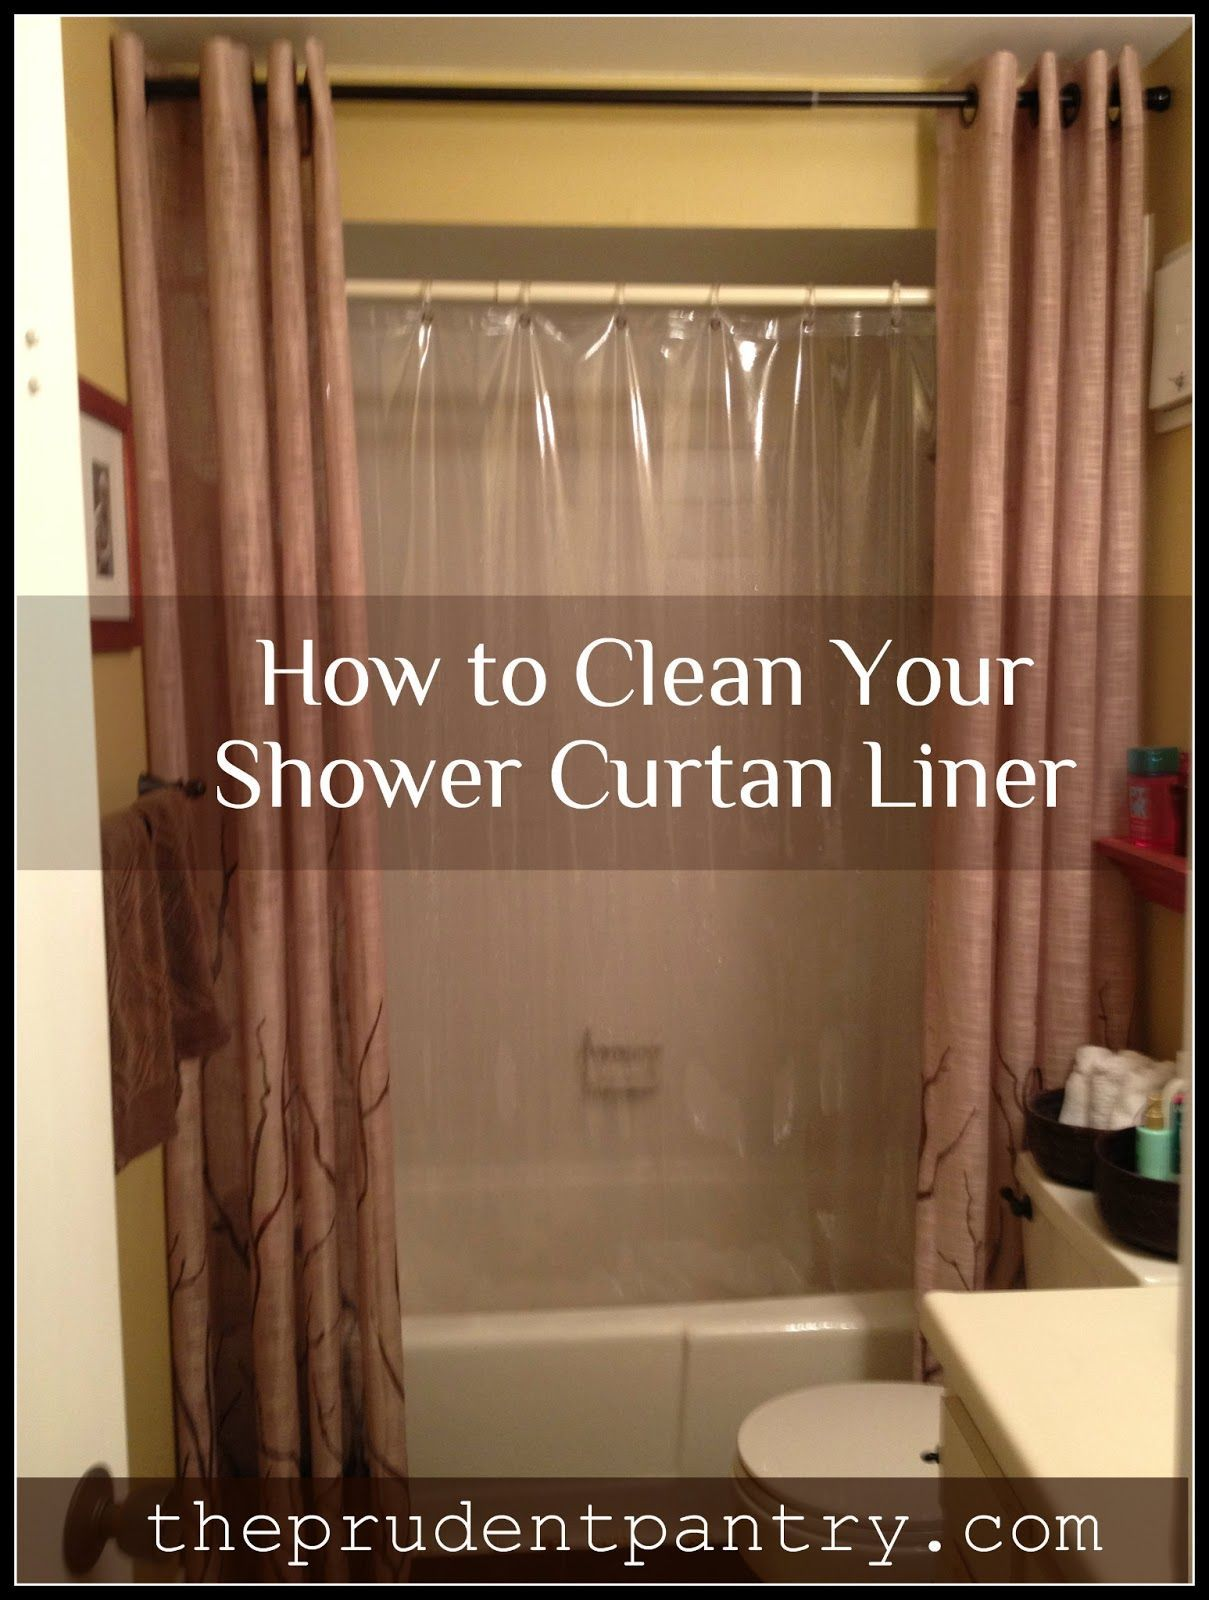 13 Awesome Ways How To Build Clean Plastic Shower Curtain Clean